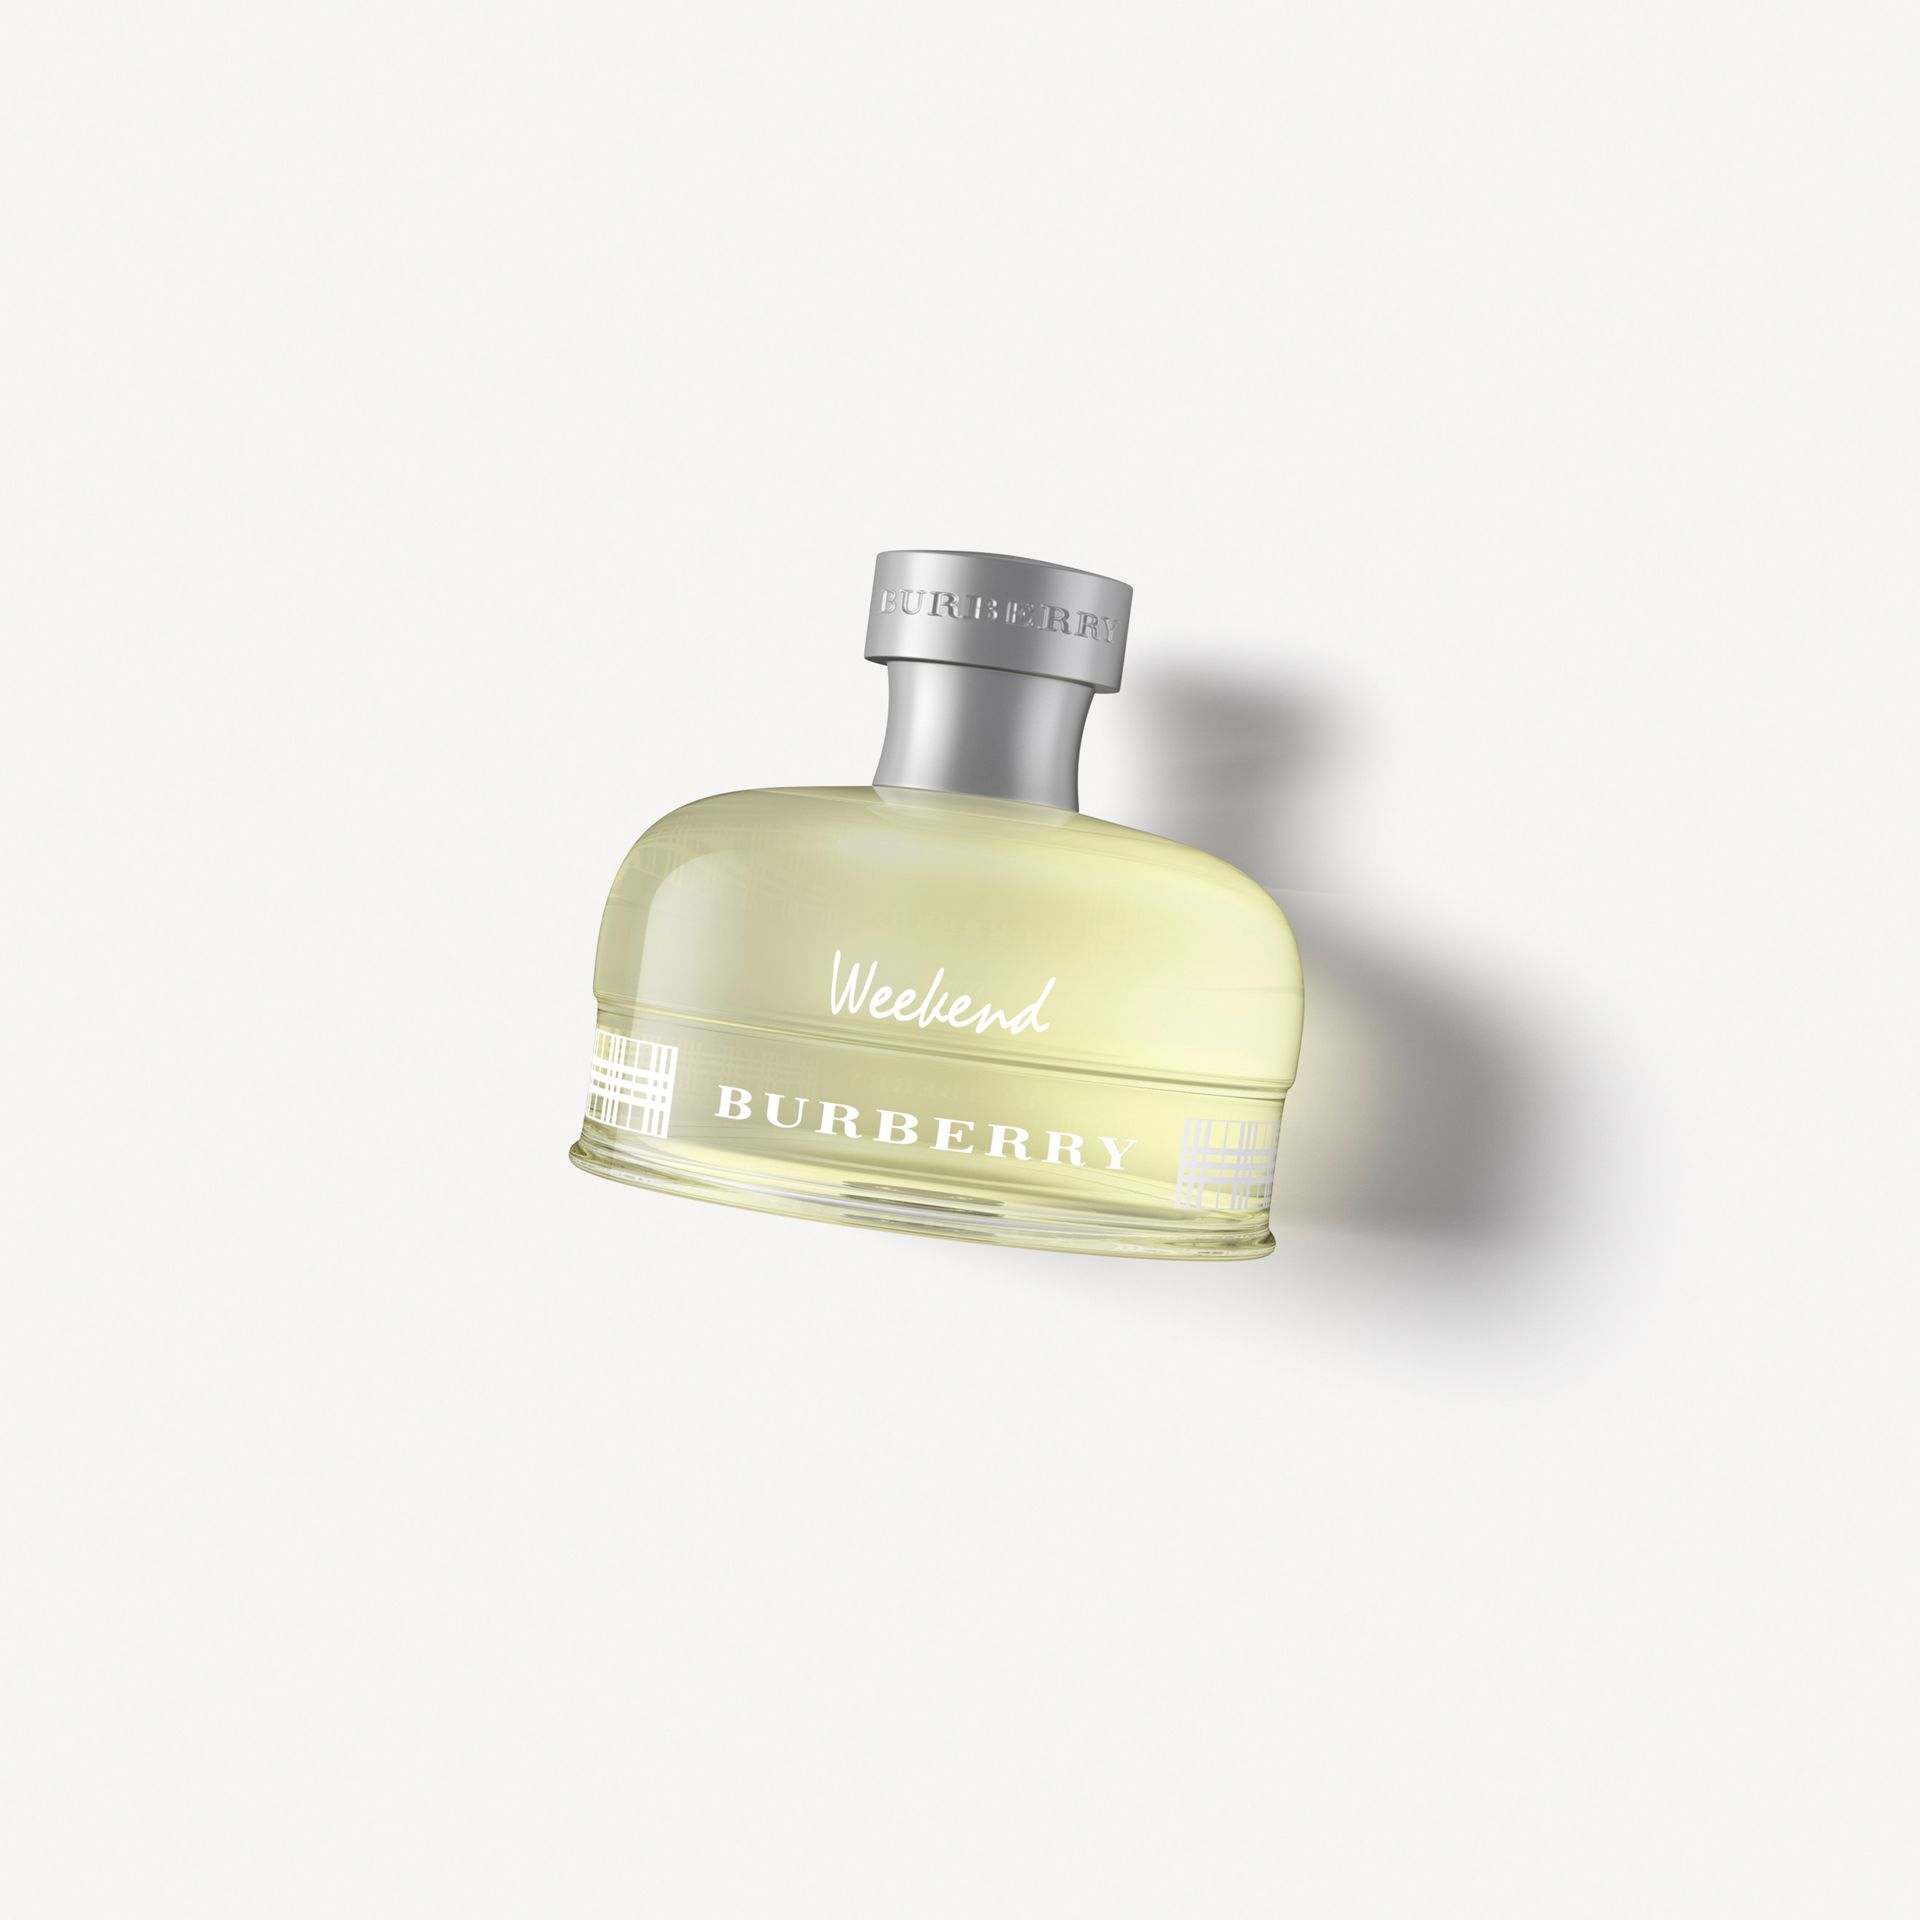 Burberry Weekend Eau de Parfum 100 ml - Donna | Burberry - immagine della galleria 0